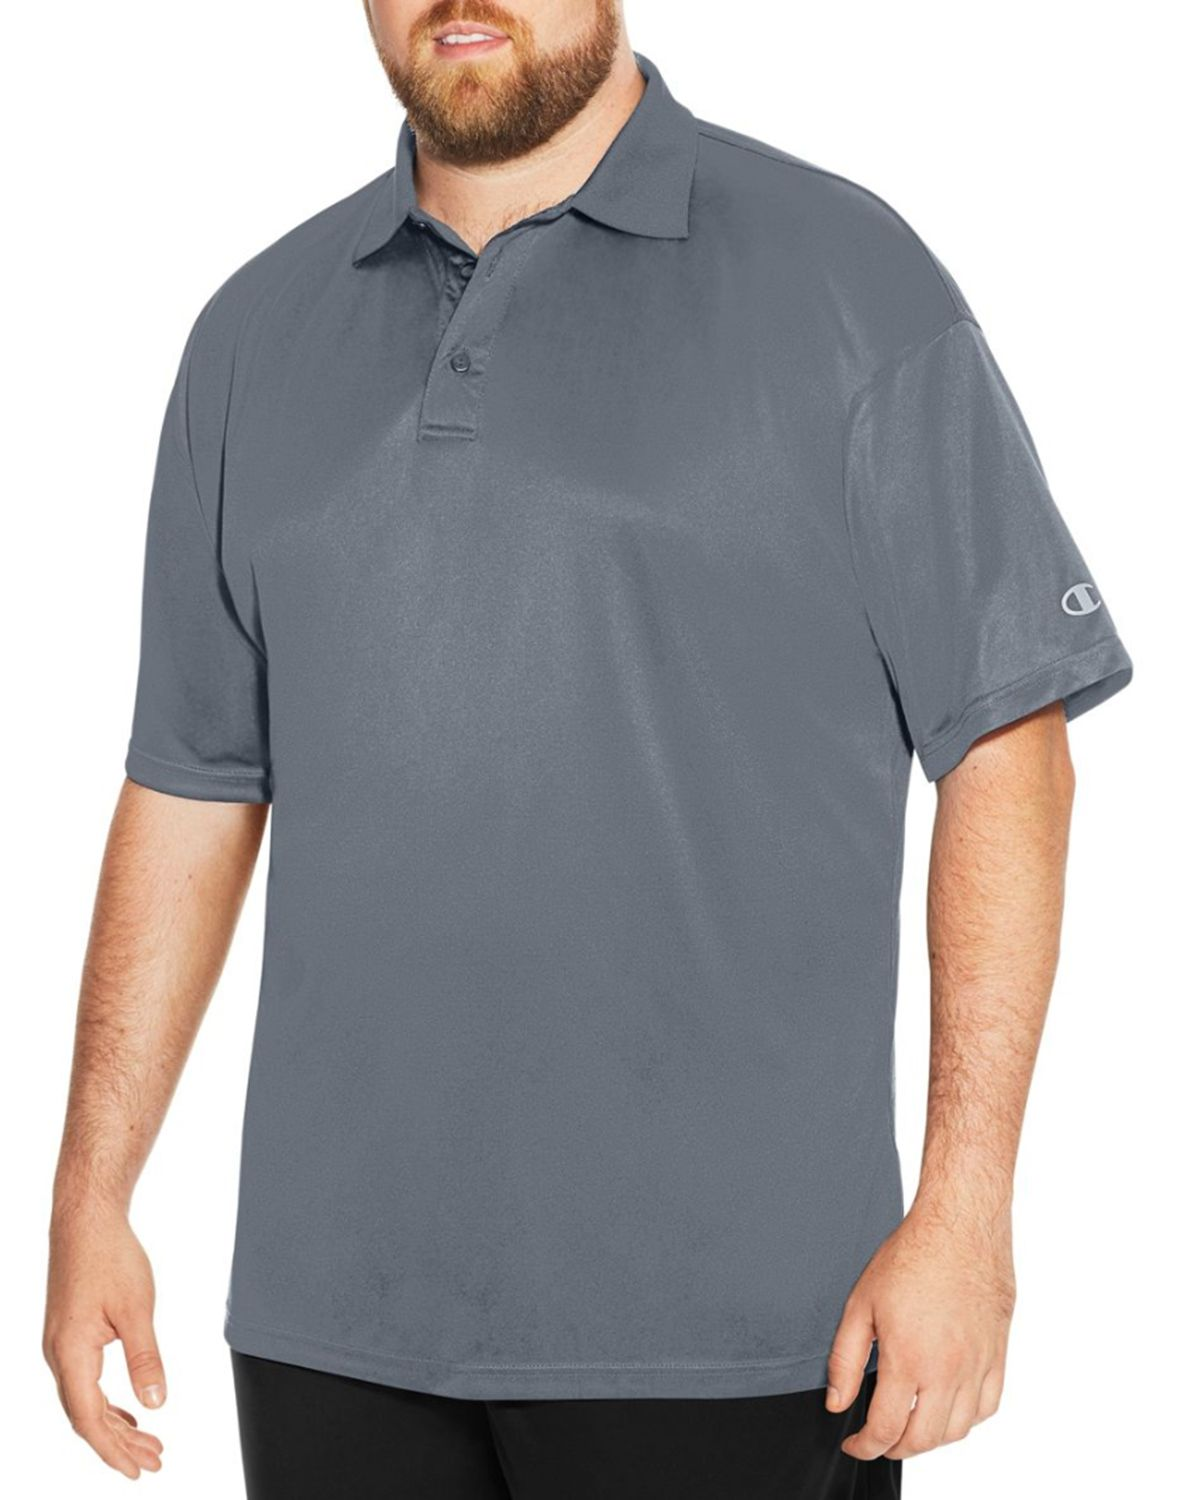 Champion Ch407 Men's Vapor Big & Tall Short-Sleeve Polo - Stormy Night - XLT #vapor